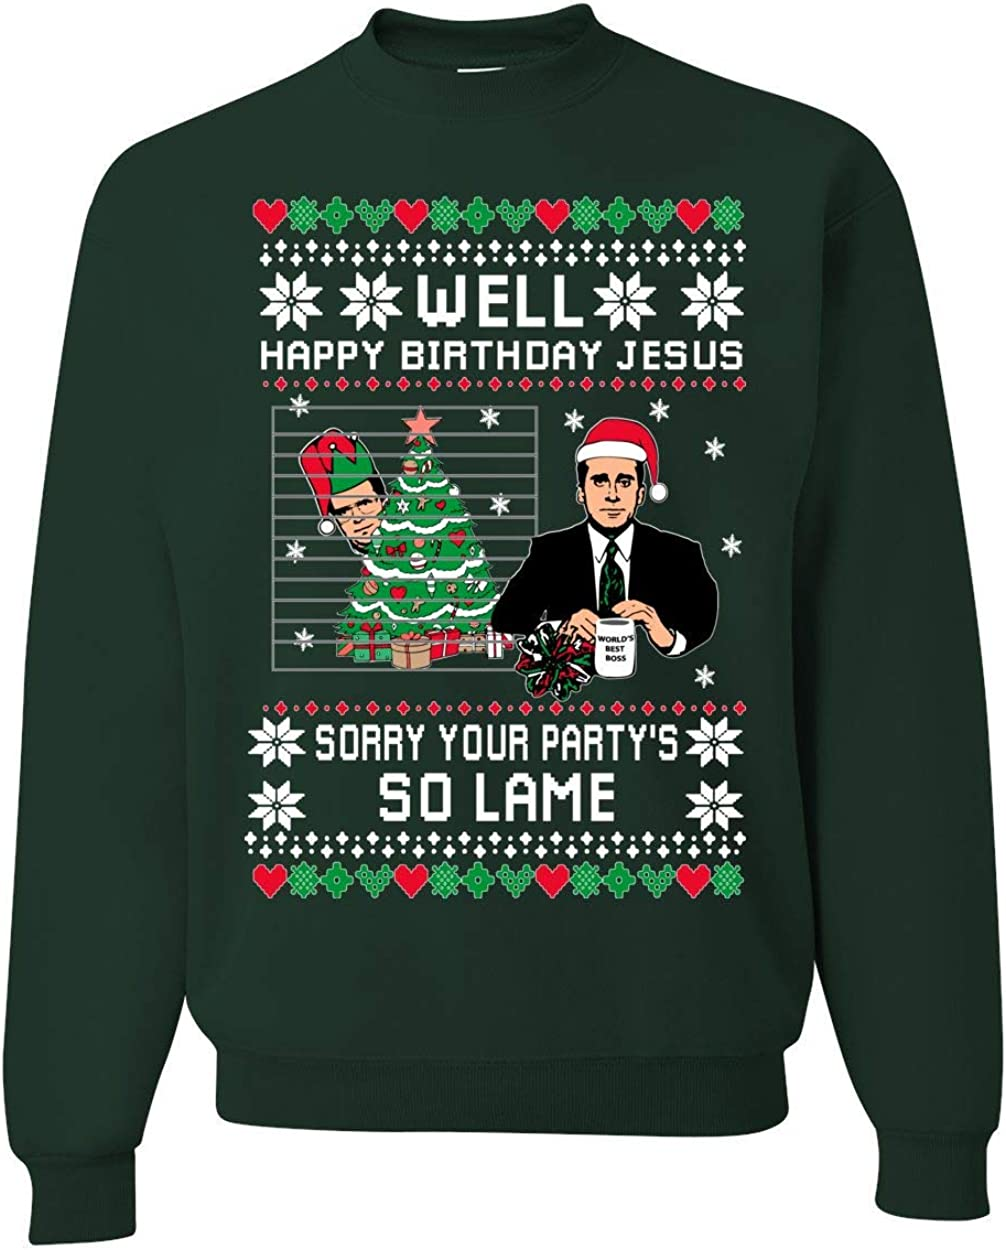 Top 6 Ugly Christmas Sweater The Office Theme